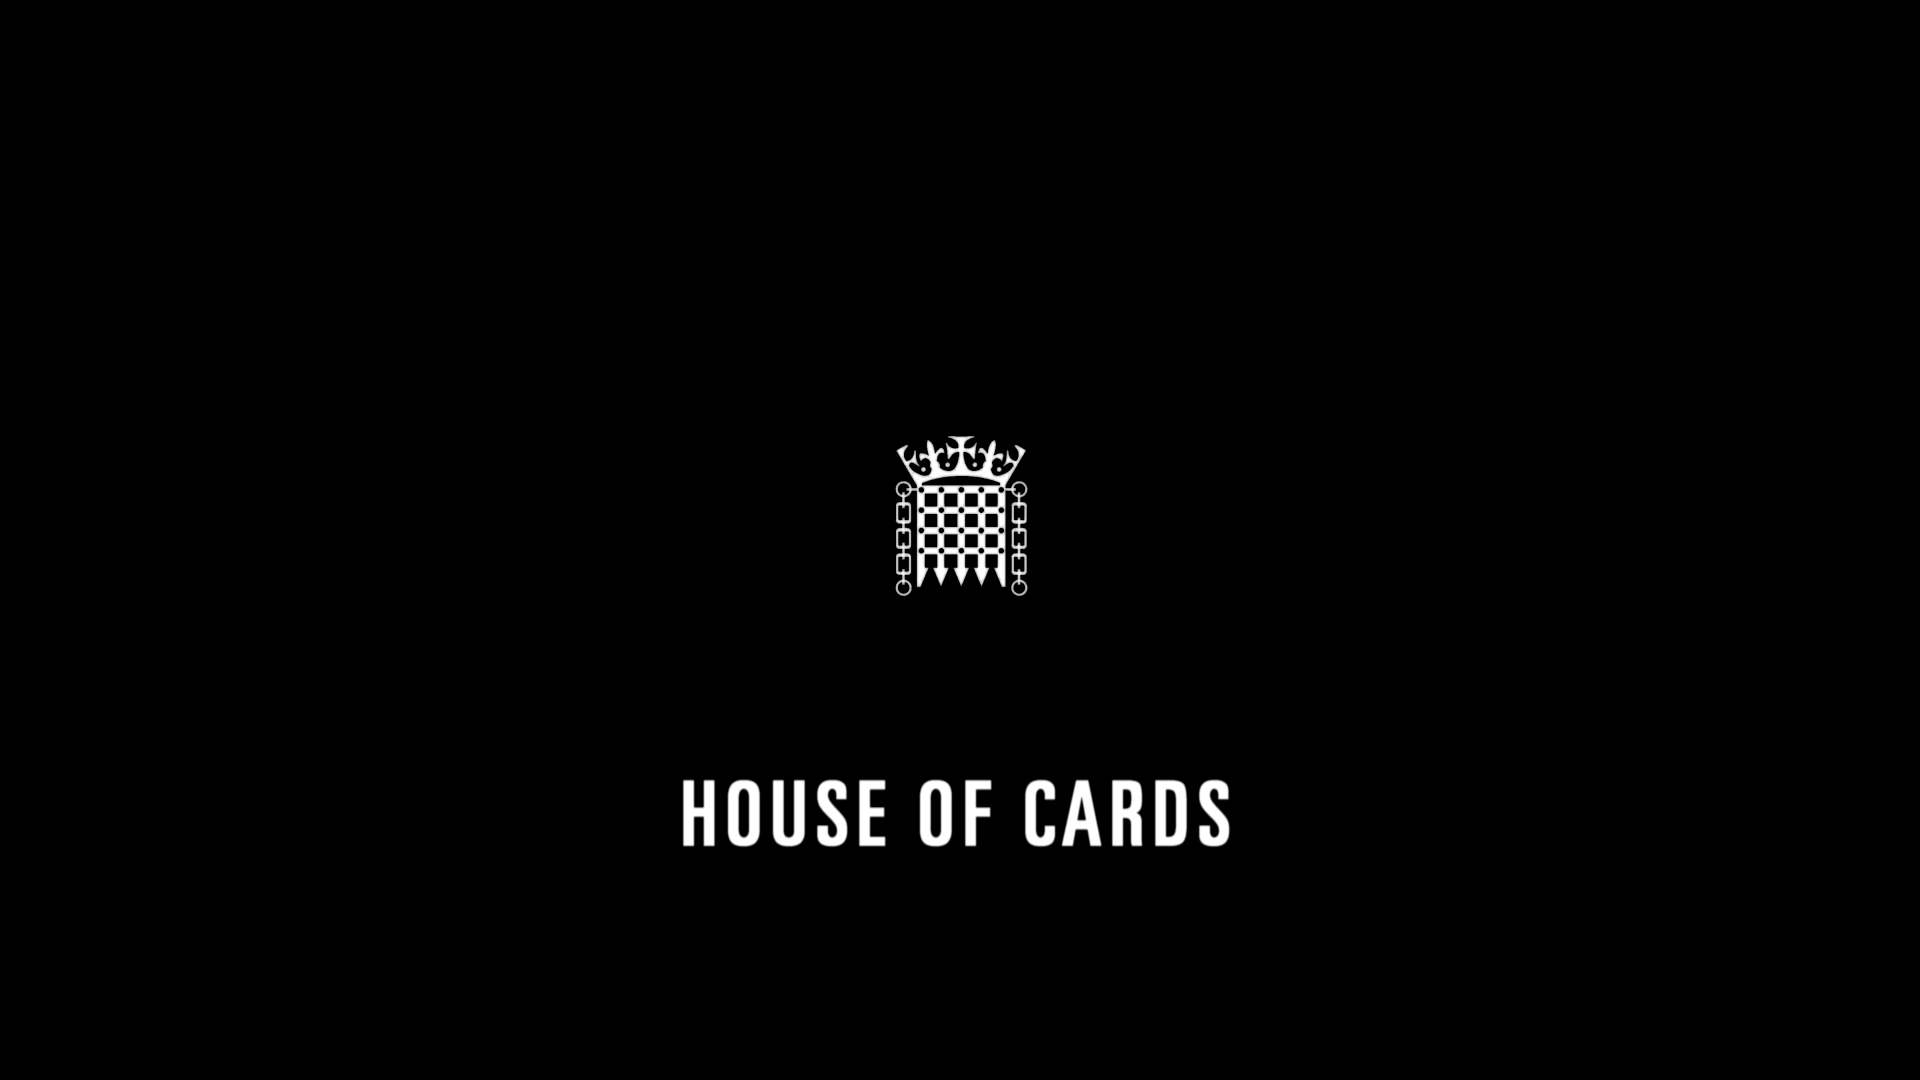 Free Download House Of Cards Wallpaper House Of Cards Trilogy